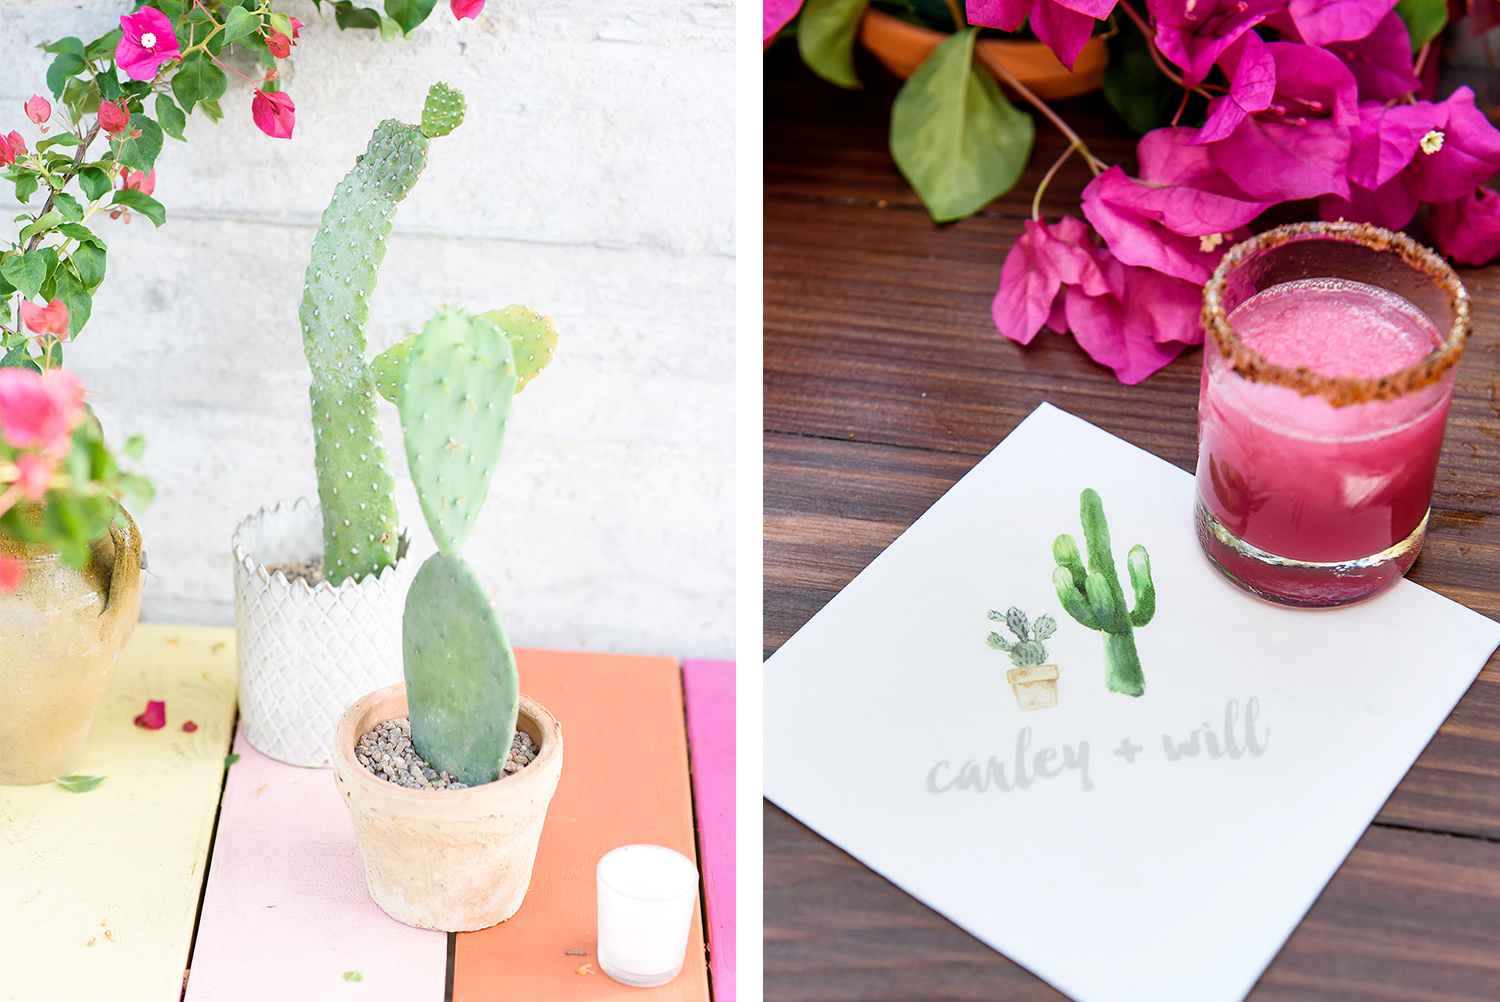 cactus themed details